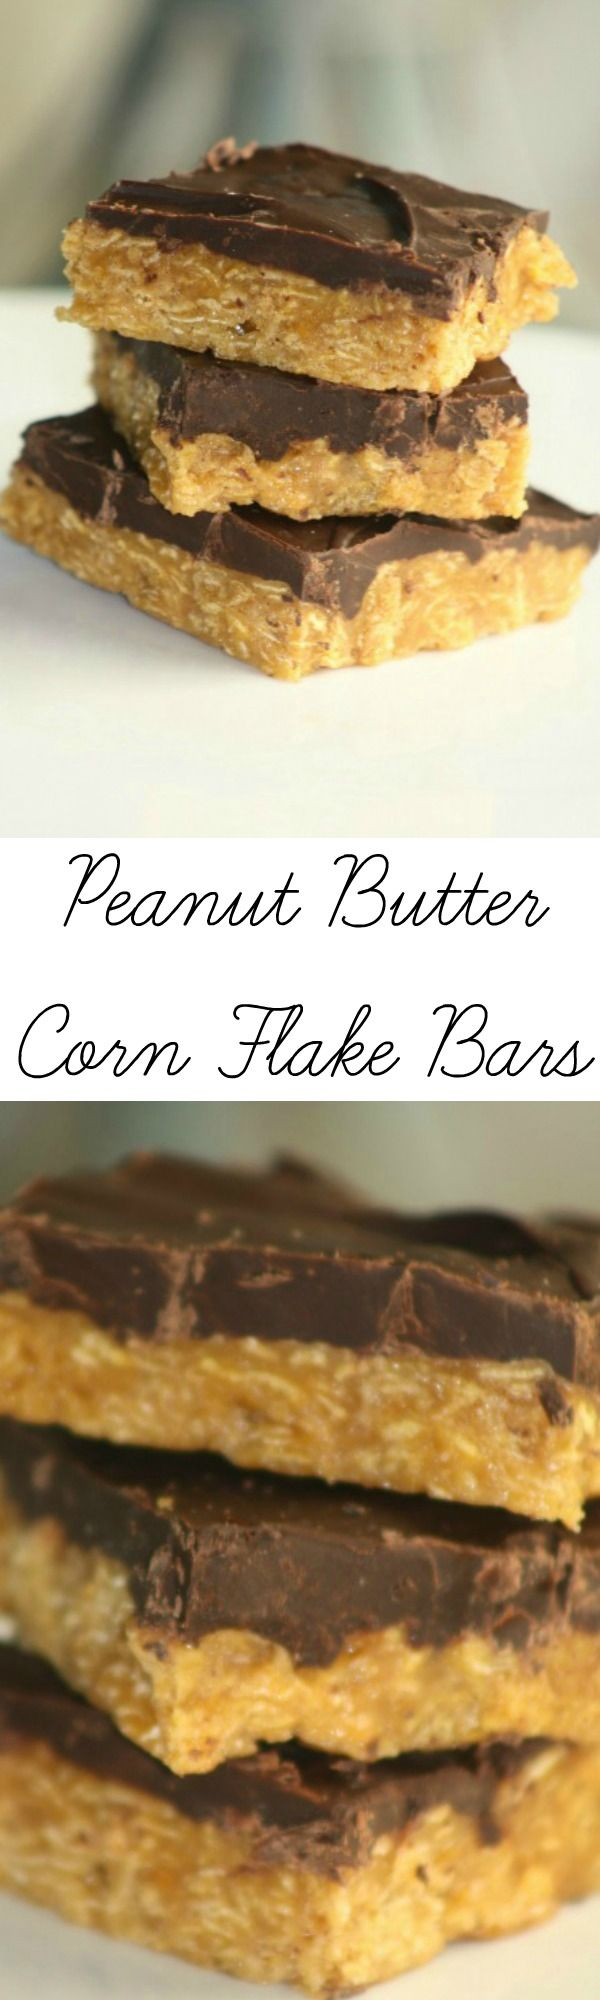 Peanut Butter Corn Flake Bars - Simple and delicious corn flake bars recipe! | www.sincerelyjean.com